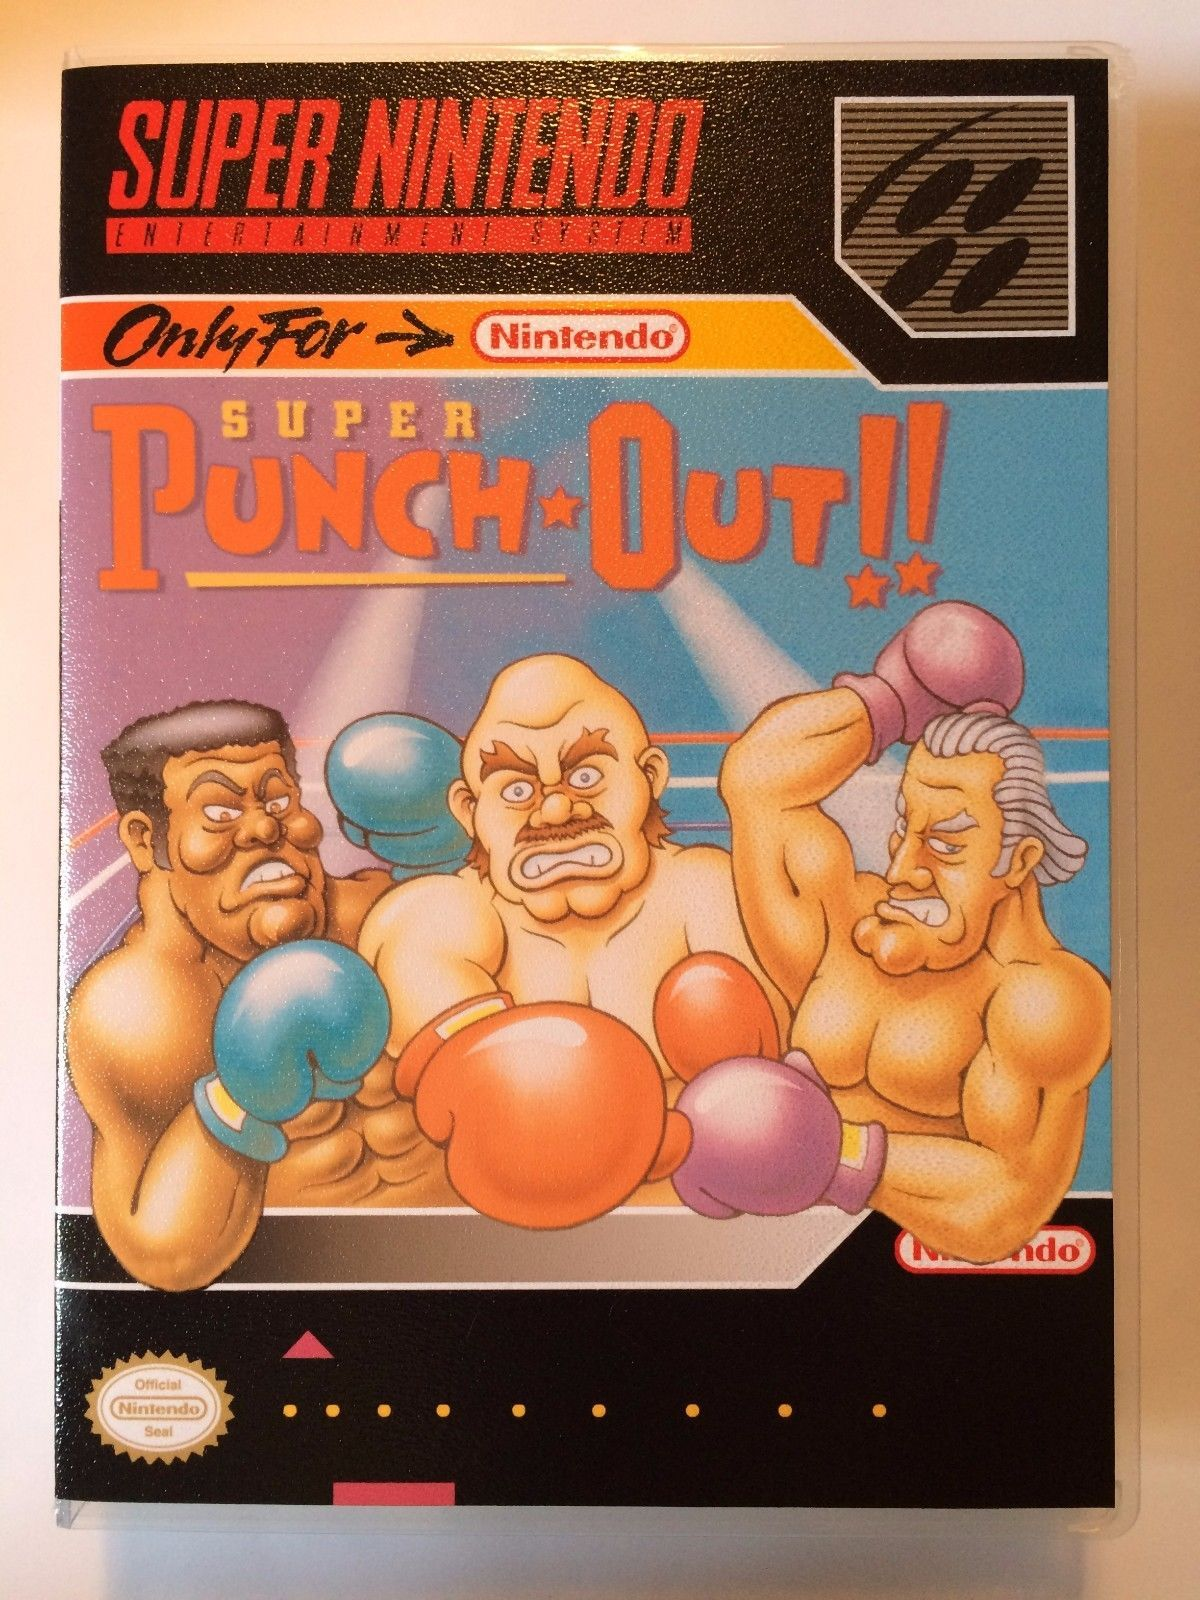 Super Punch Out - Super Nintendo - Replacement Case - No Game